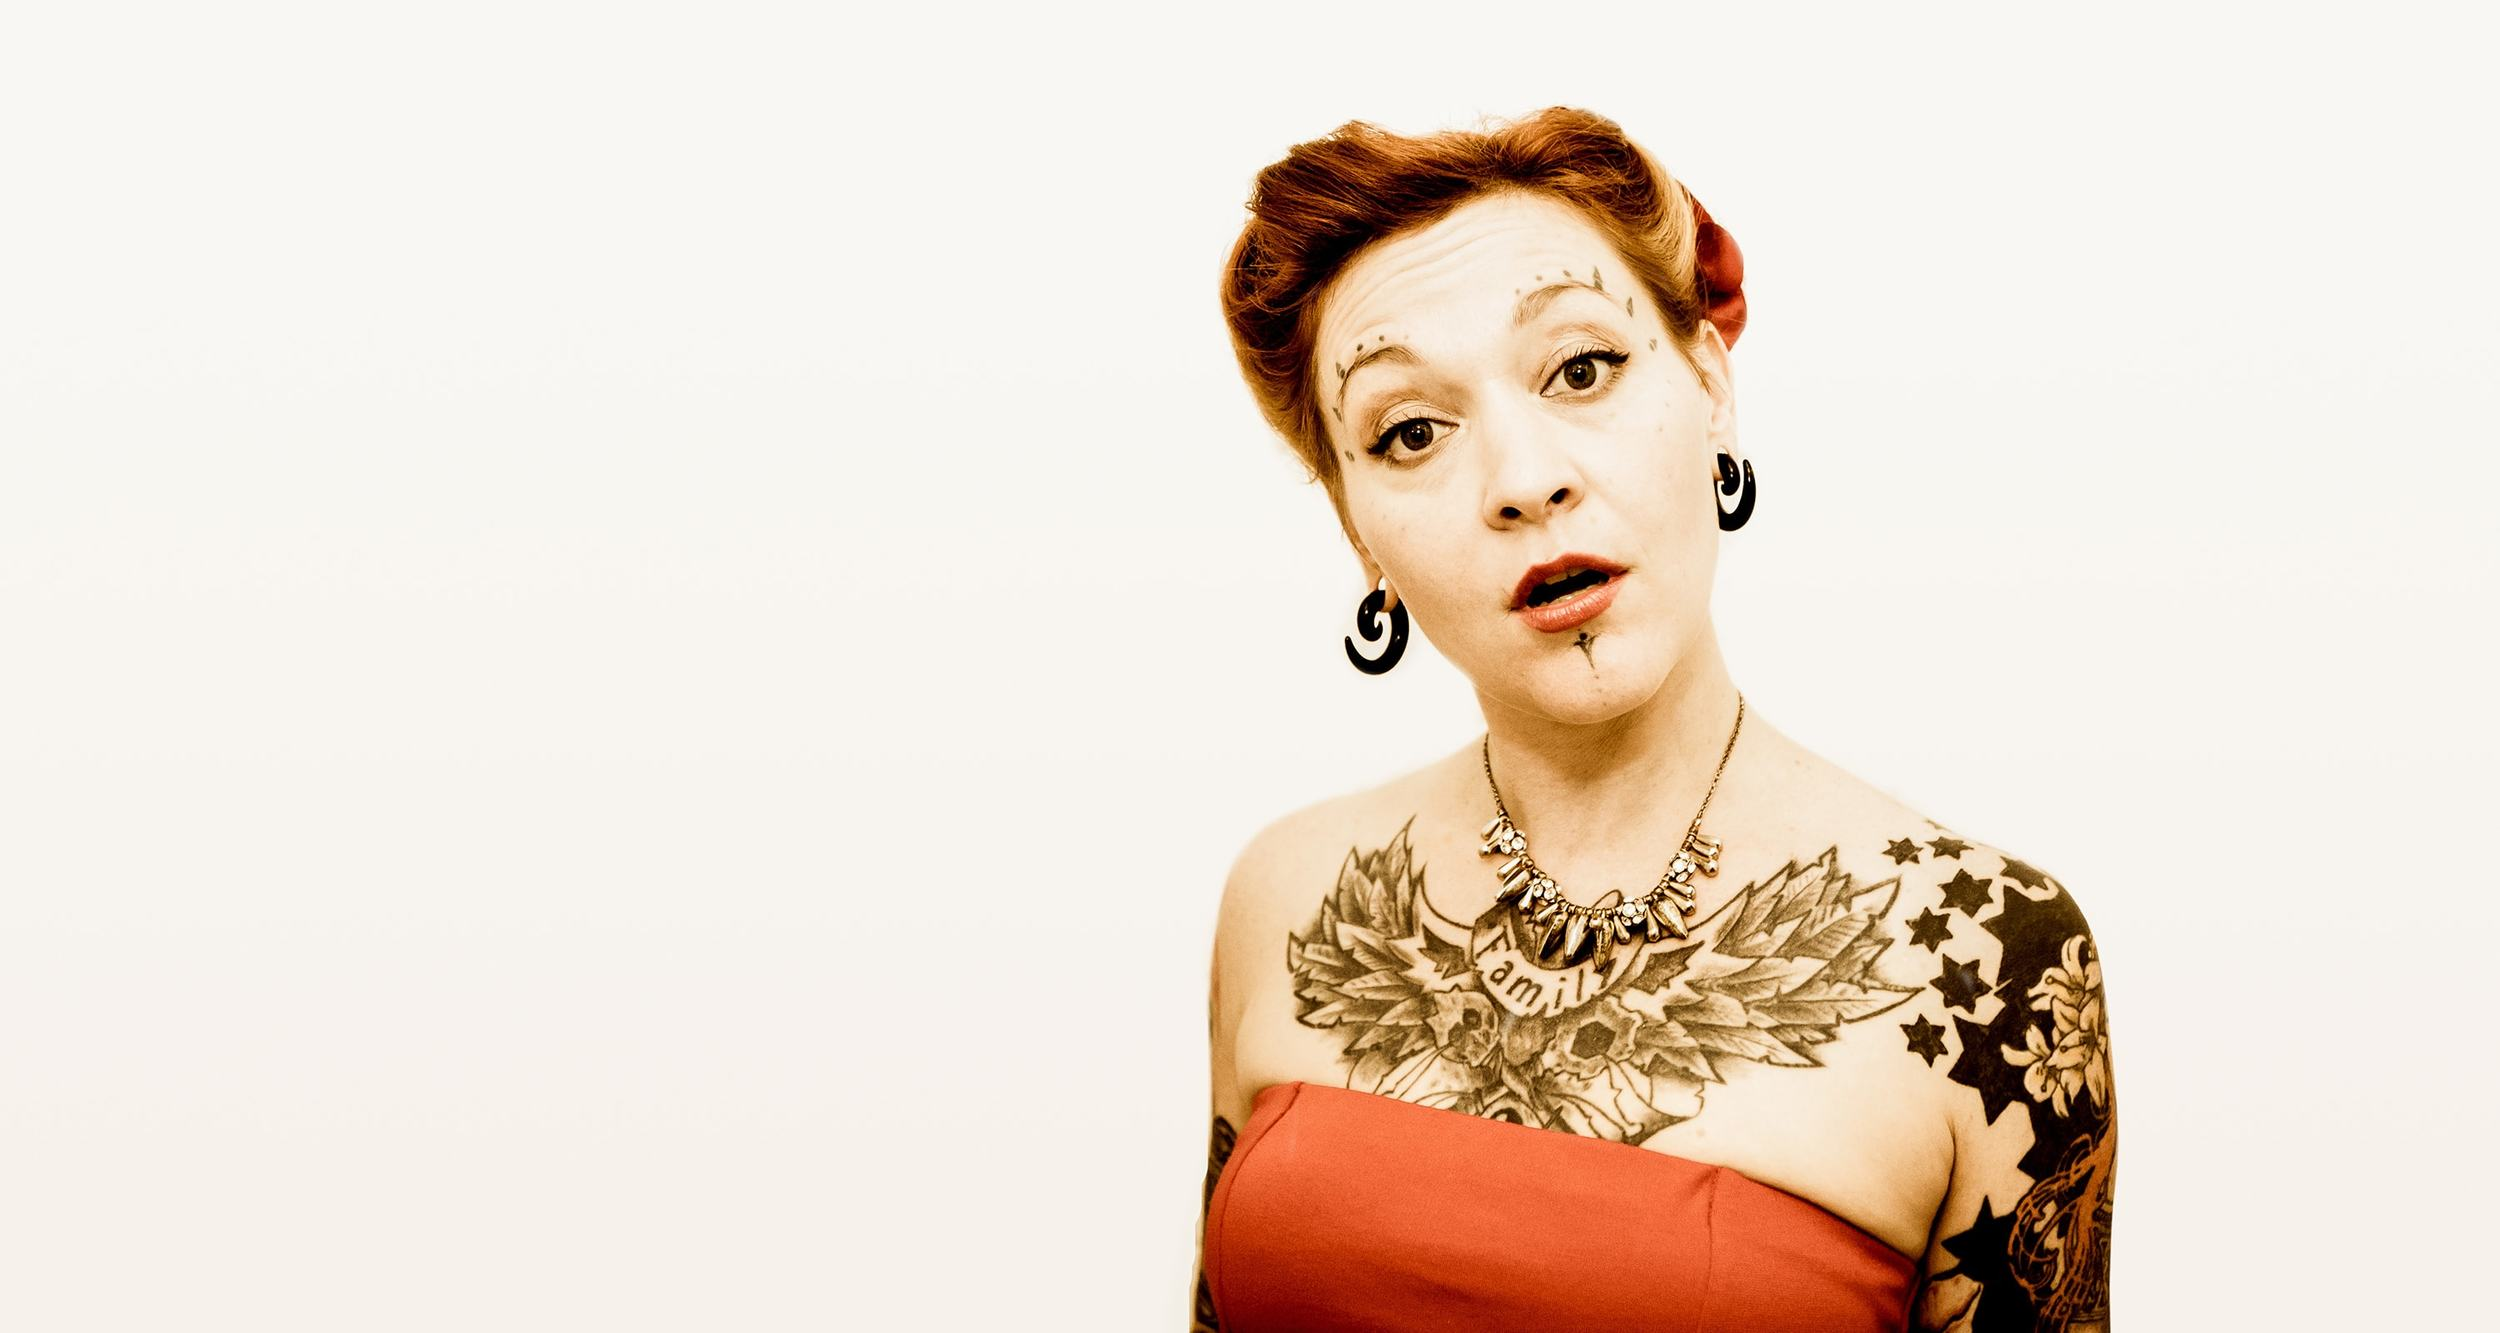 meschiya-header-1.jpg